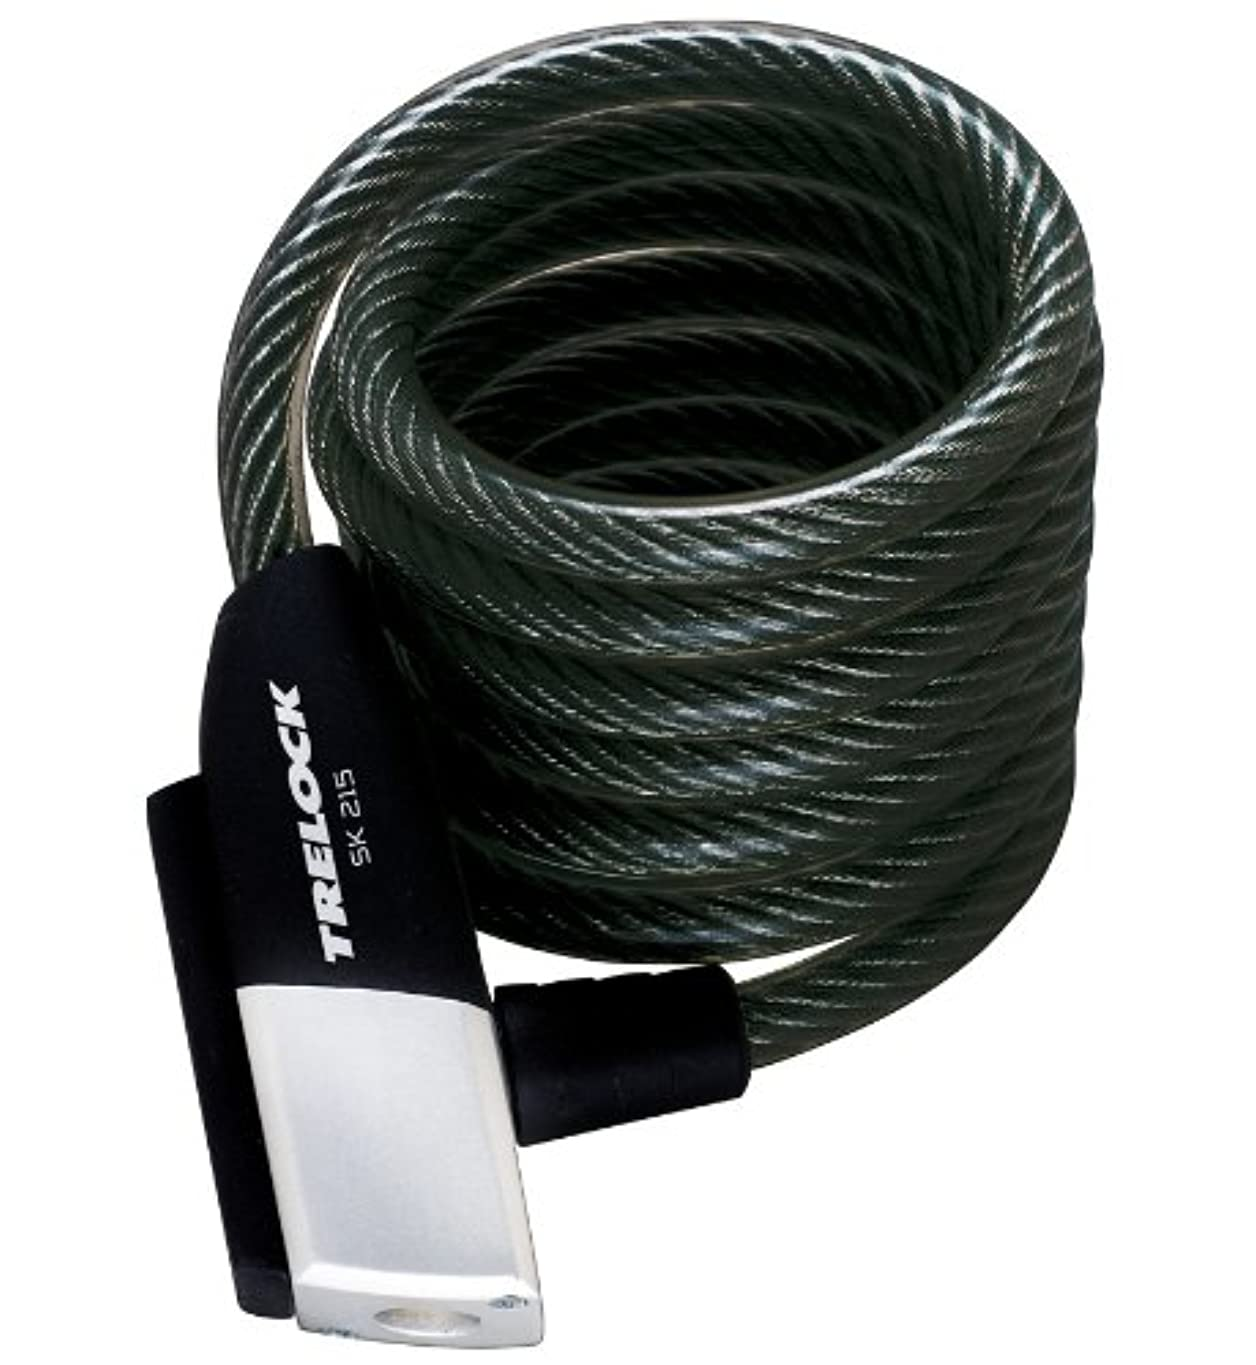 防腐剤メロドラマ以前はTrelock SK 215 Spiral Cable Lock Length 1500 mm 2014 cabel lock by Trelock